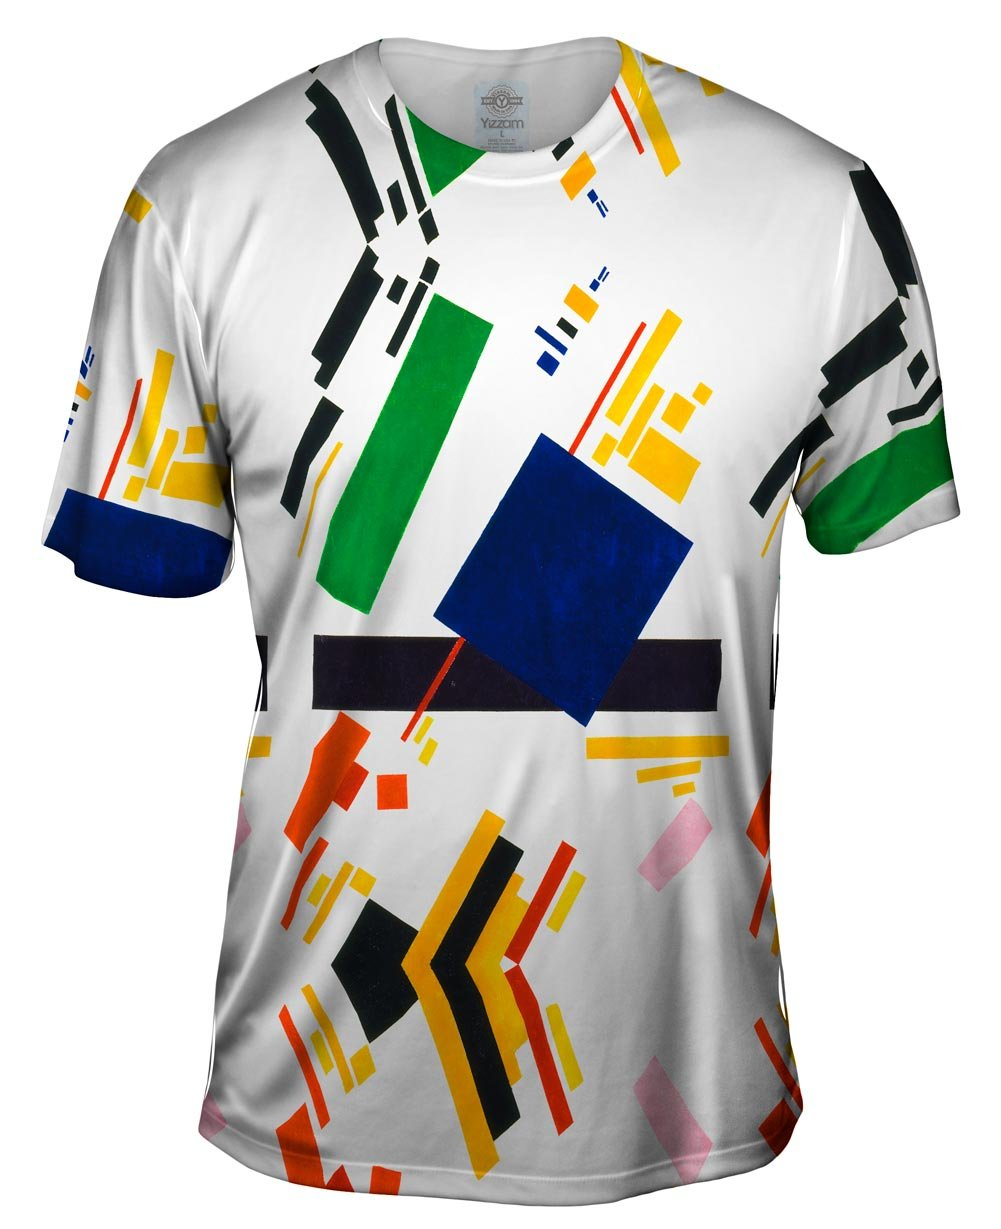 "Kazimir Malevich - ""Suprematist Composition"" (1916) -Tagless- Mens Shirt"